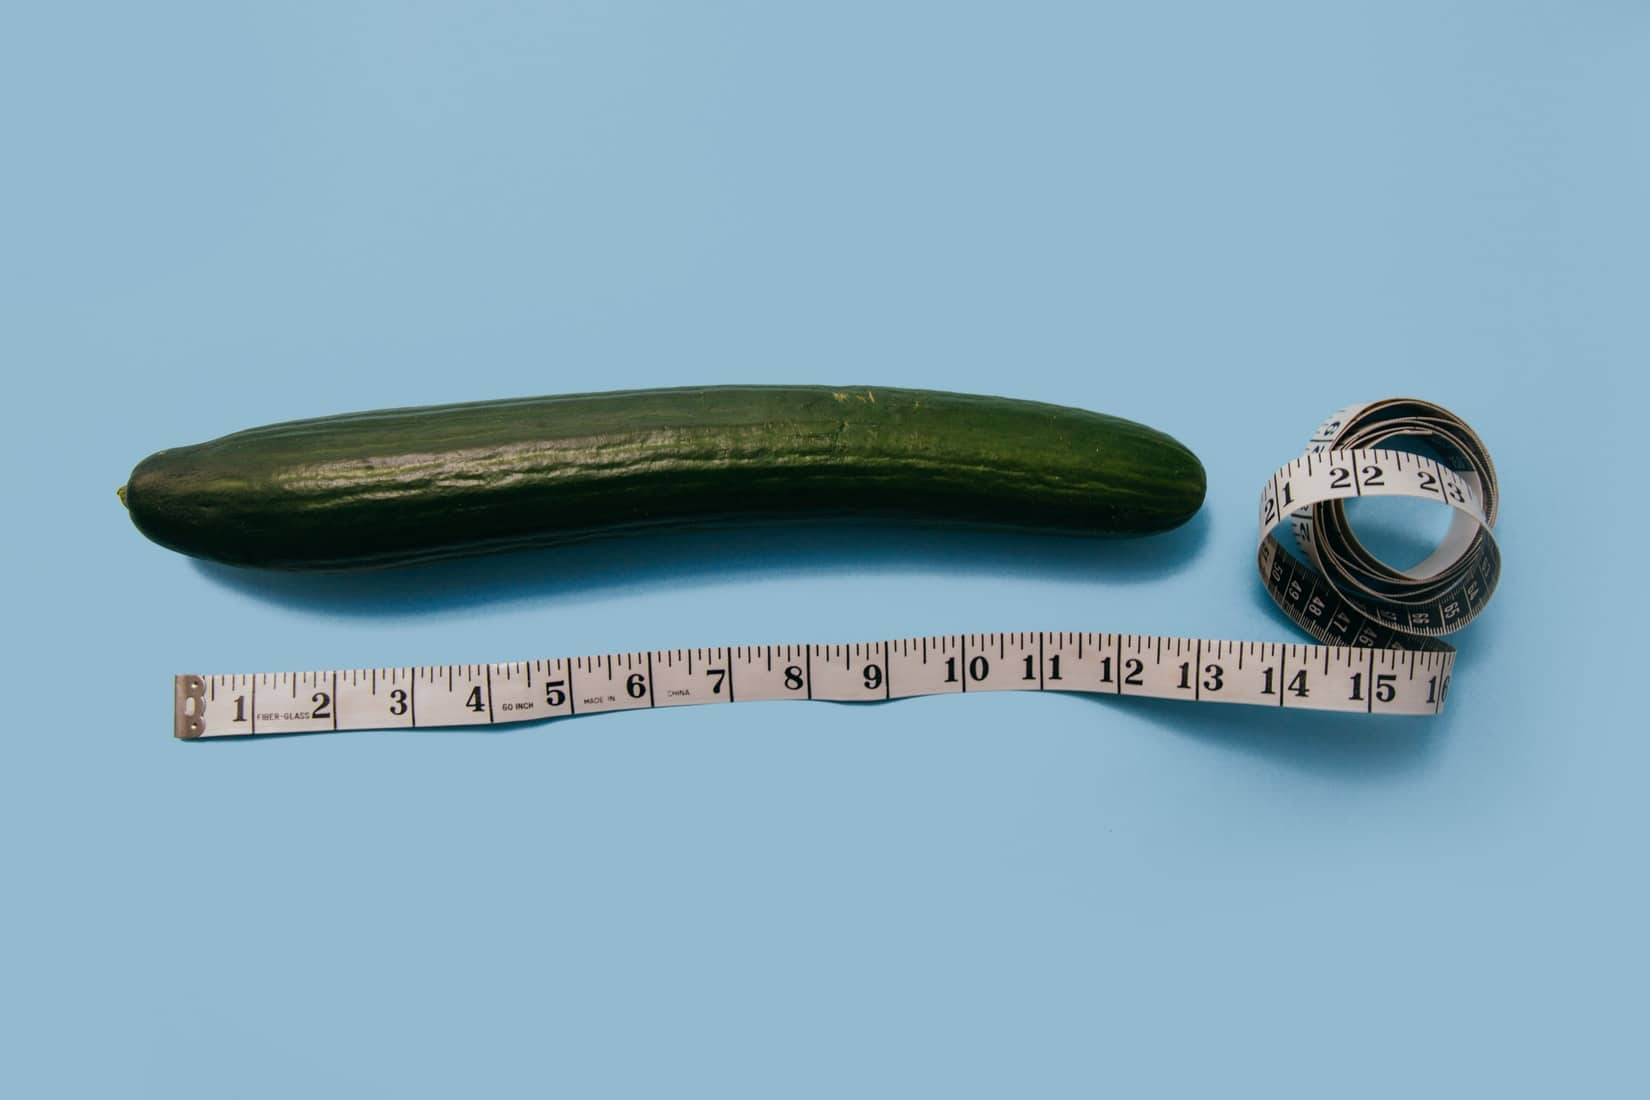 Photo of a cucumber with a tape measure beside it.